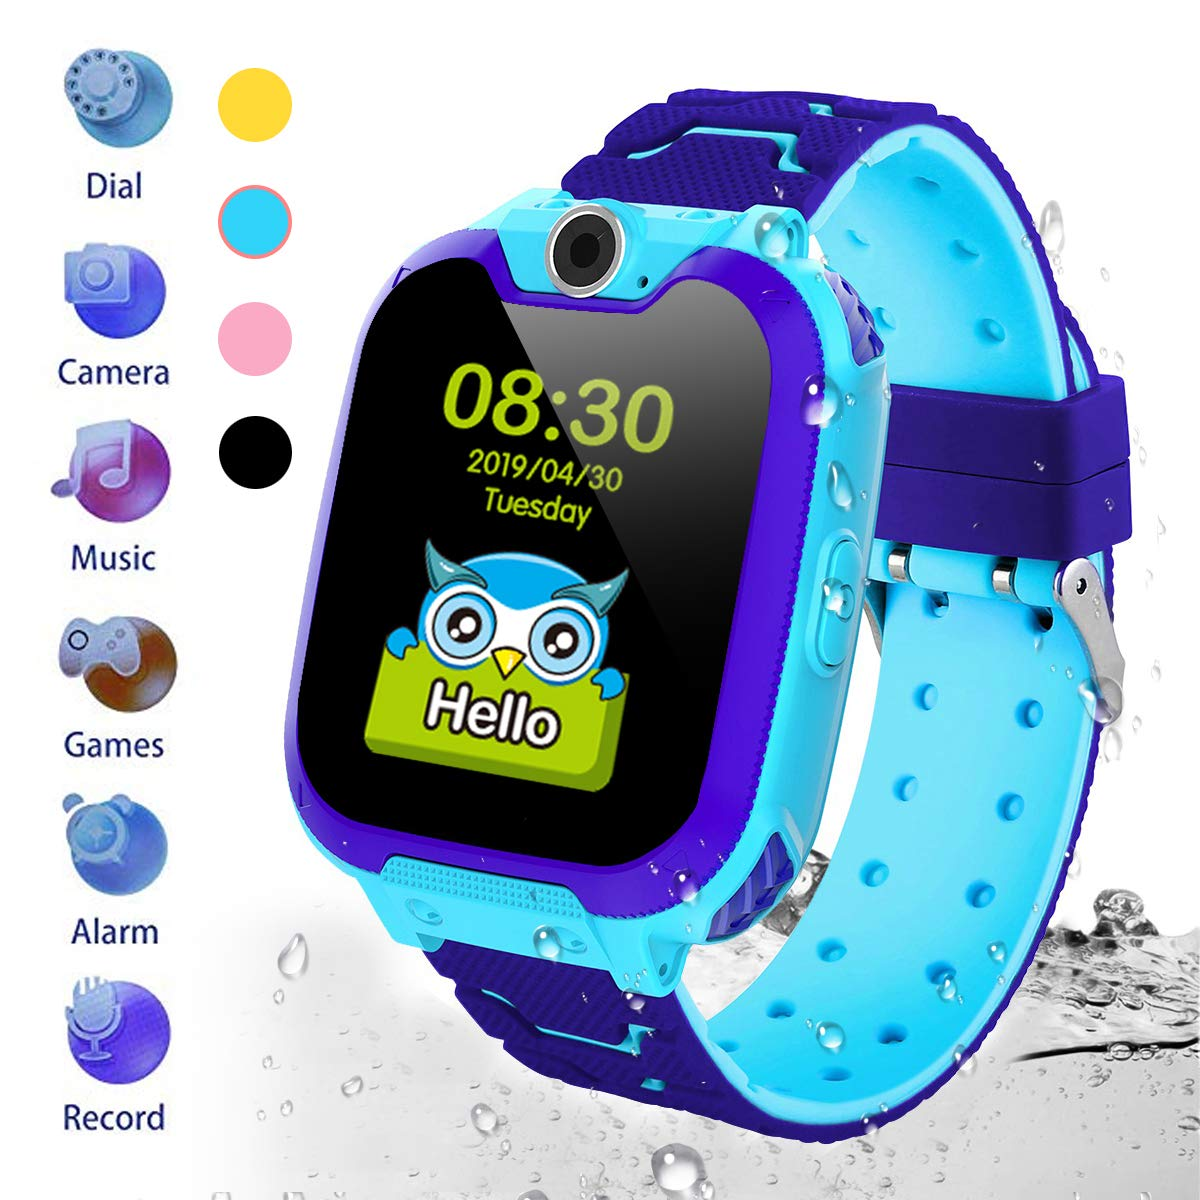 HuaWise Smartwatch For Kids Review